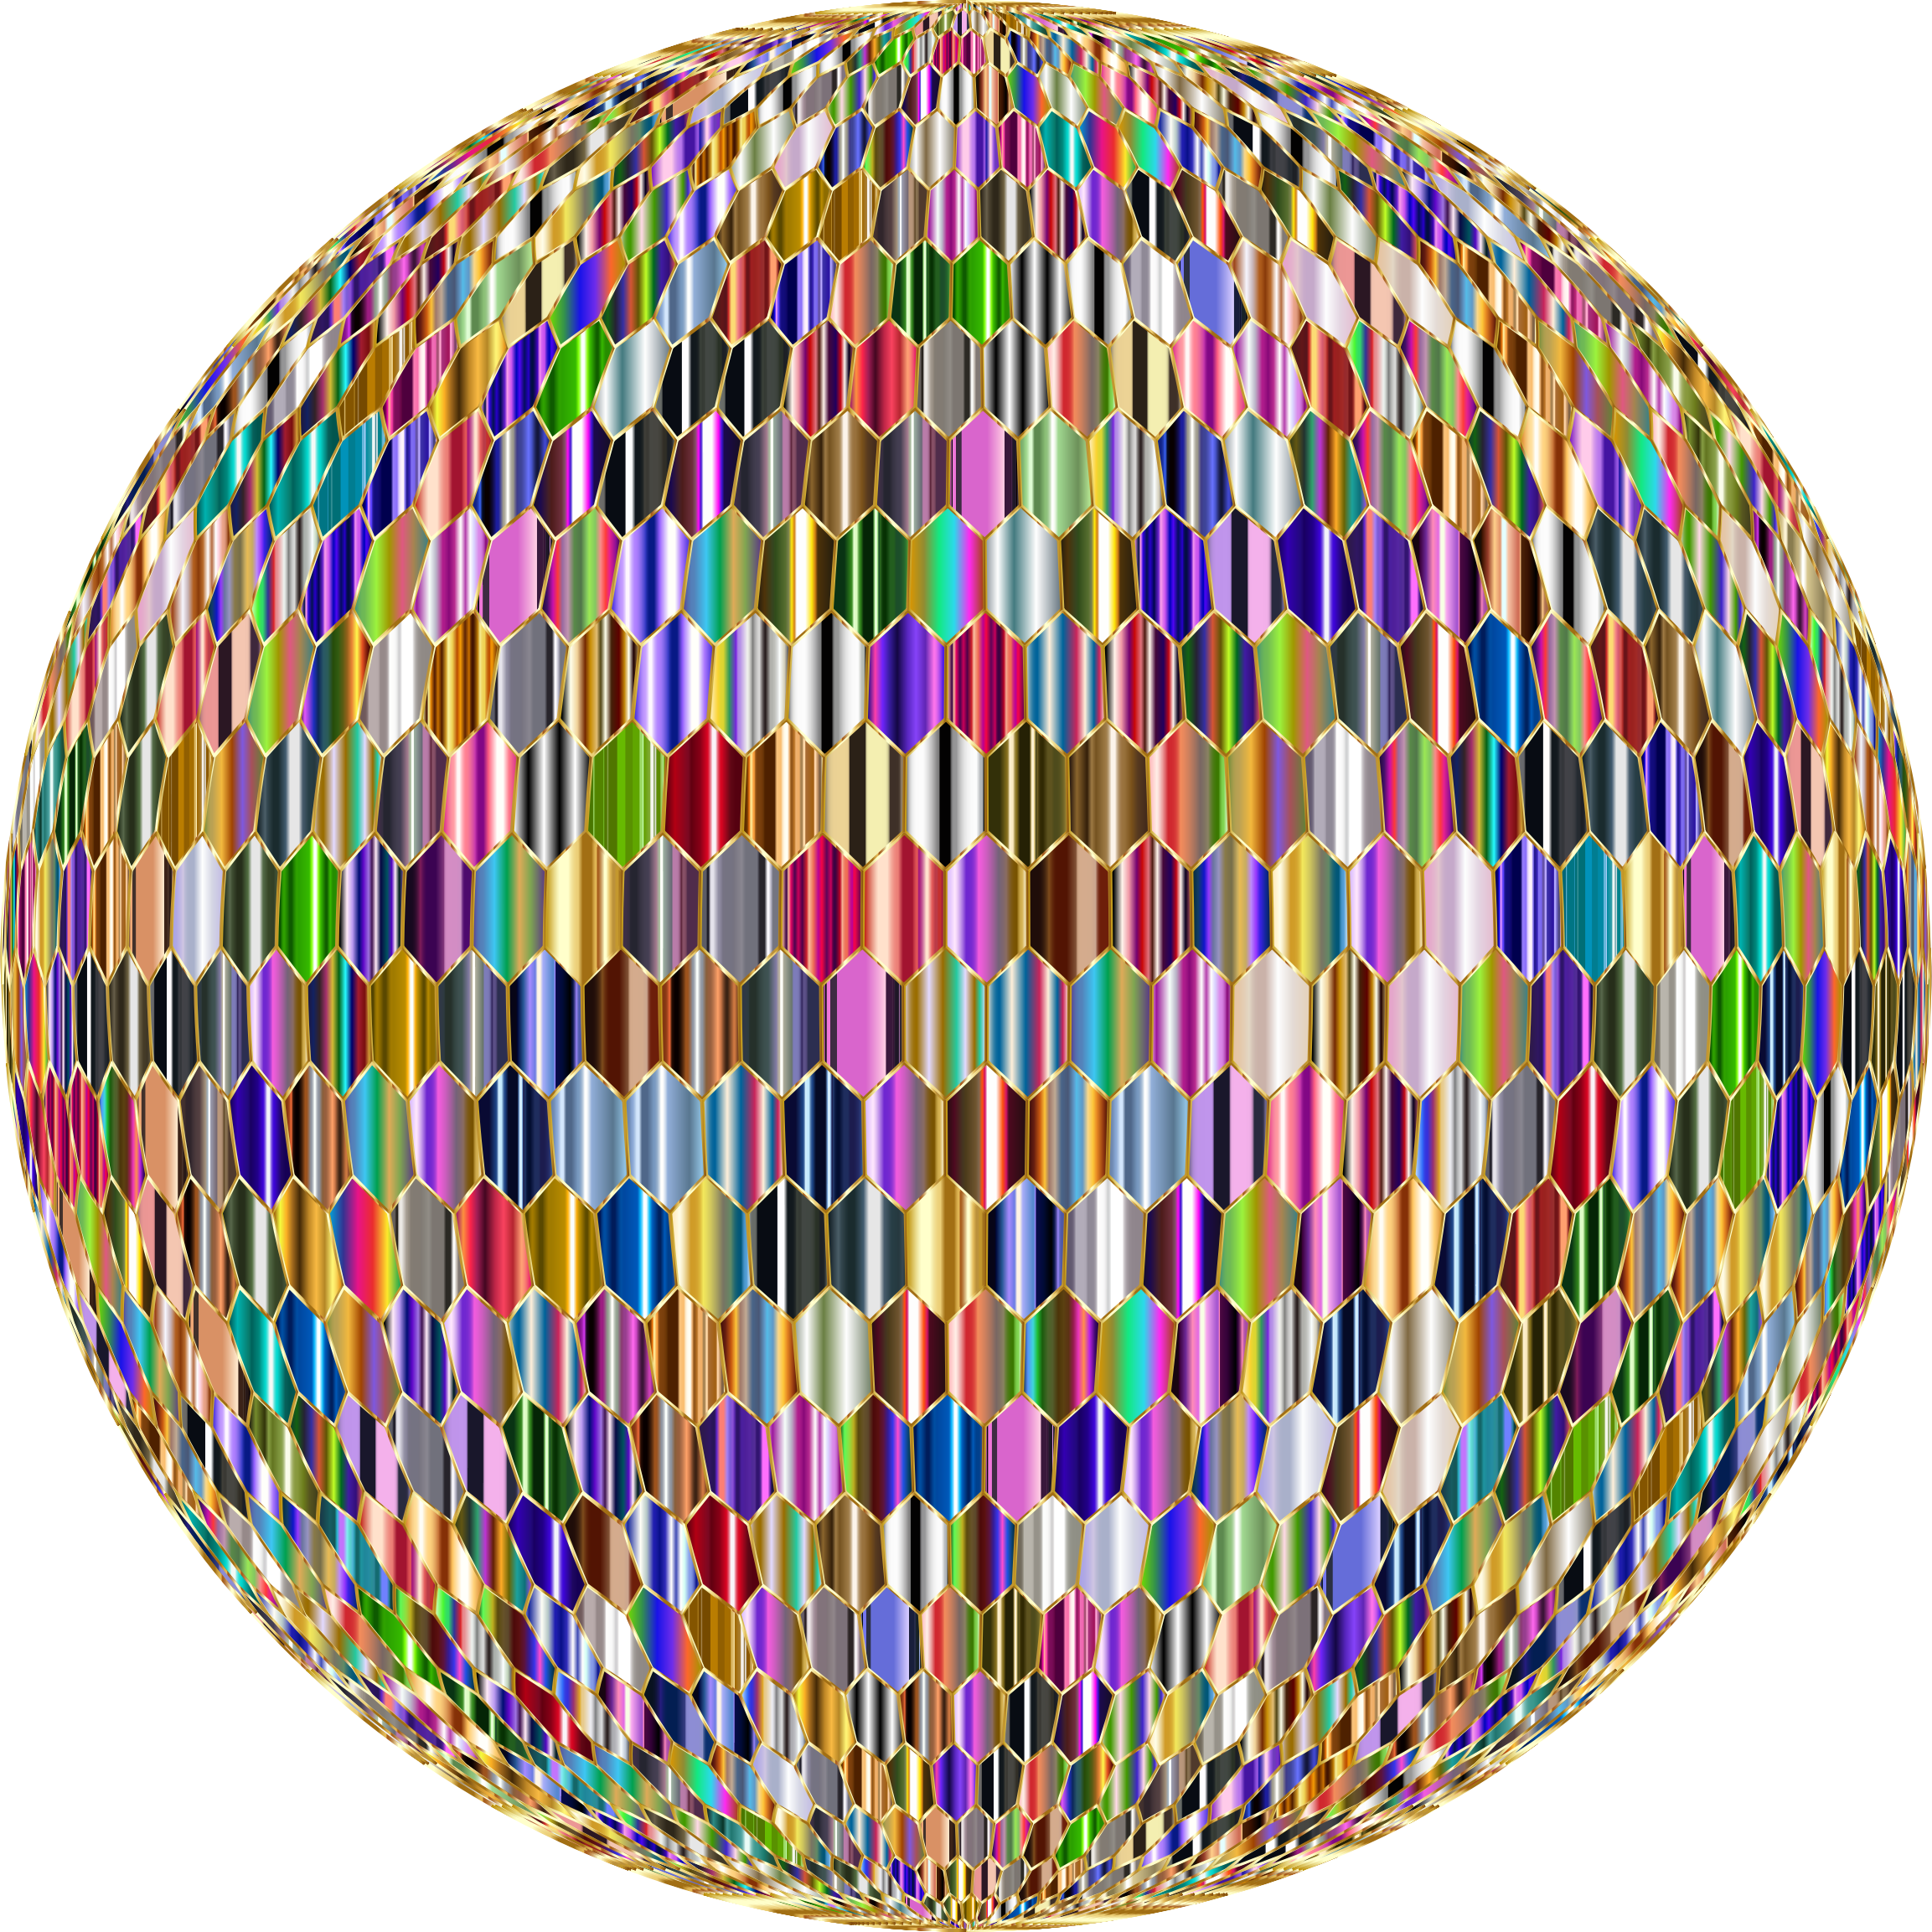 Prismatic Hexagonal Grid Sphere Variation 2 10 Variation 2 by GDJ